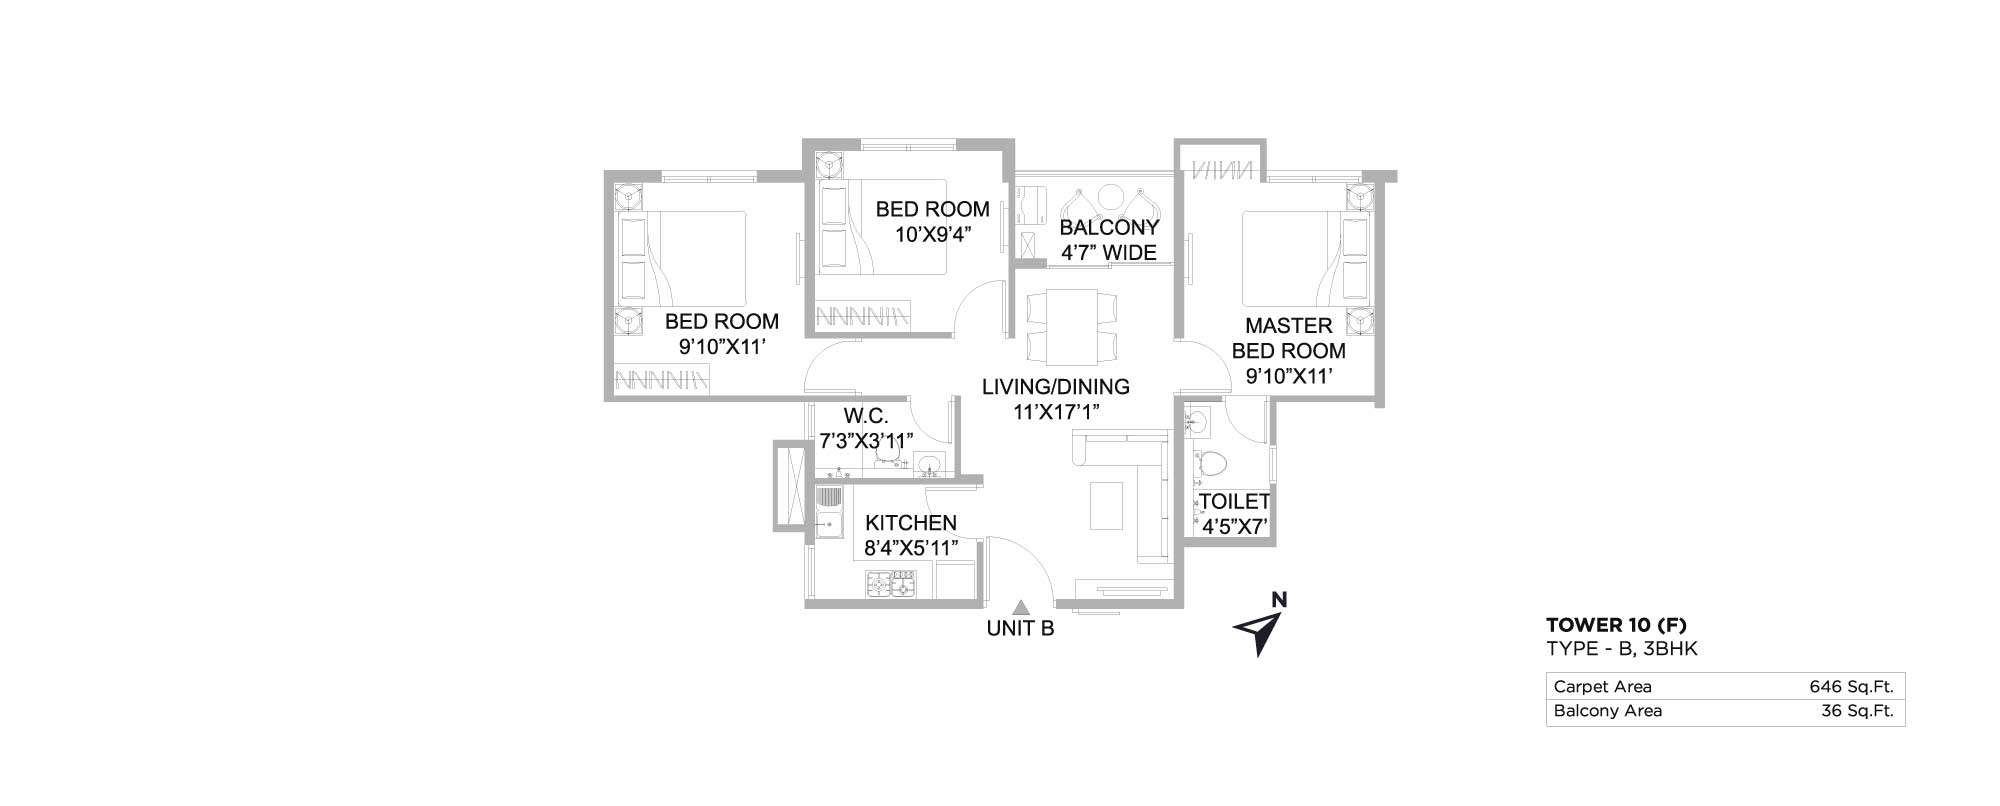 The 102 3 BHK 646 Sq. Ft.